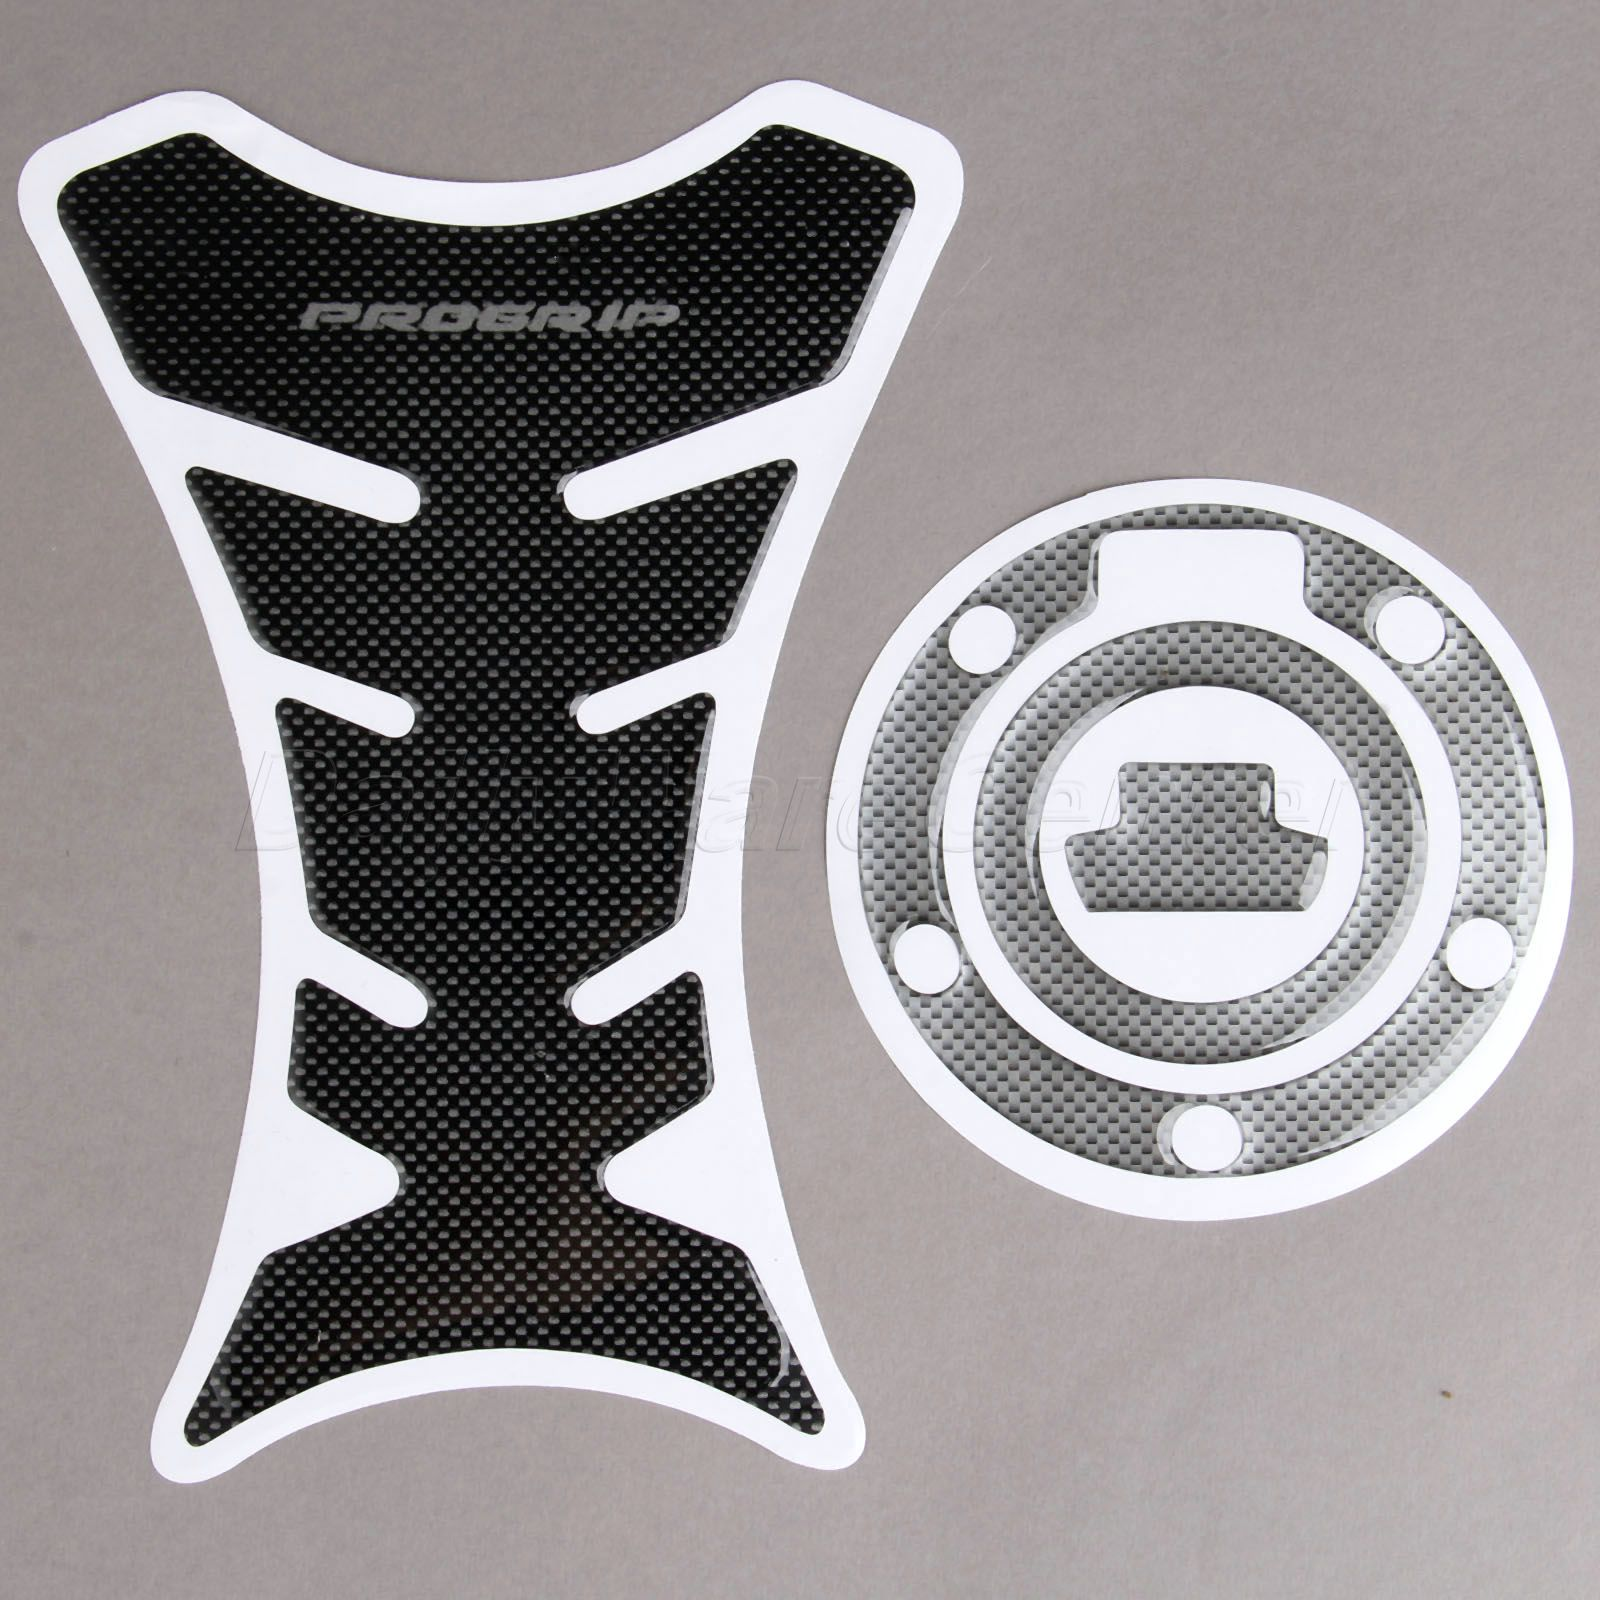 Carbon fiber motorcycle decoration decals fuel tank pad sticker gas cap pad cover stickers for yamaha yzf r1 r6 fz 1 fjr1300